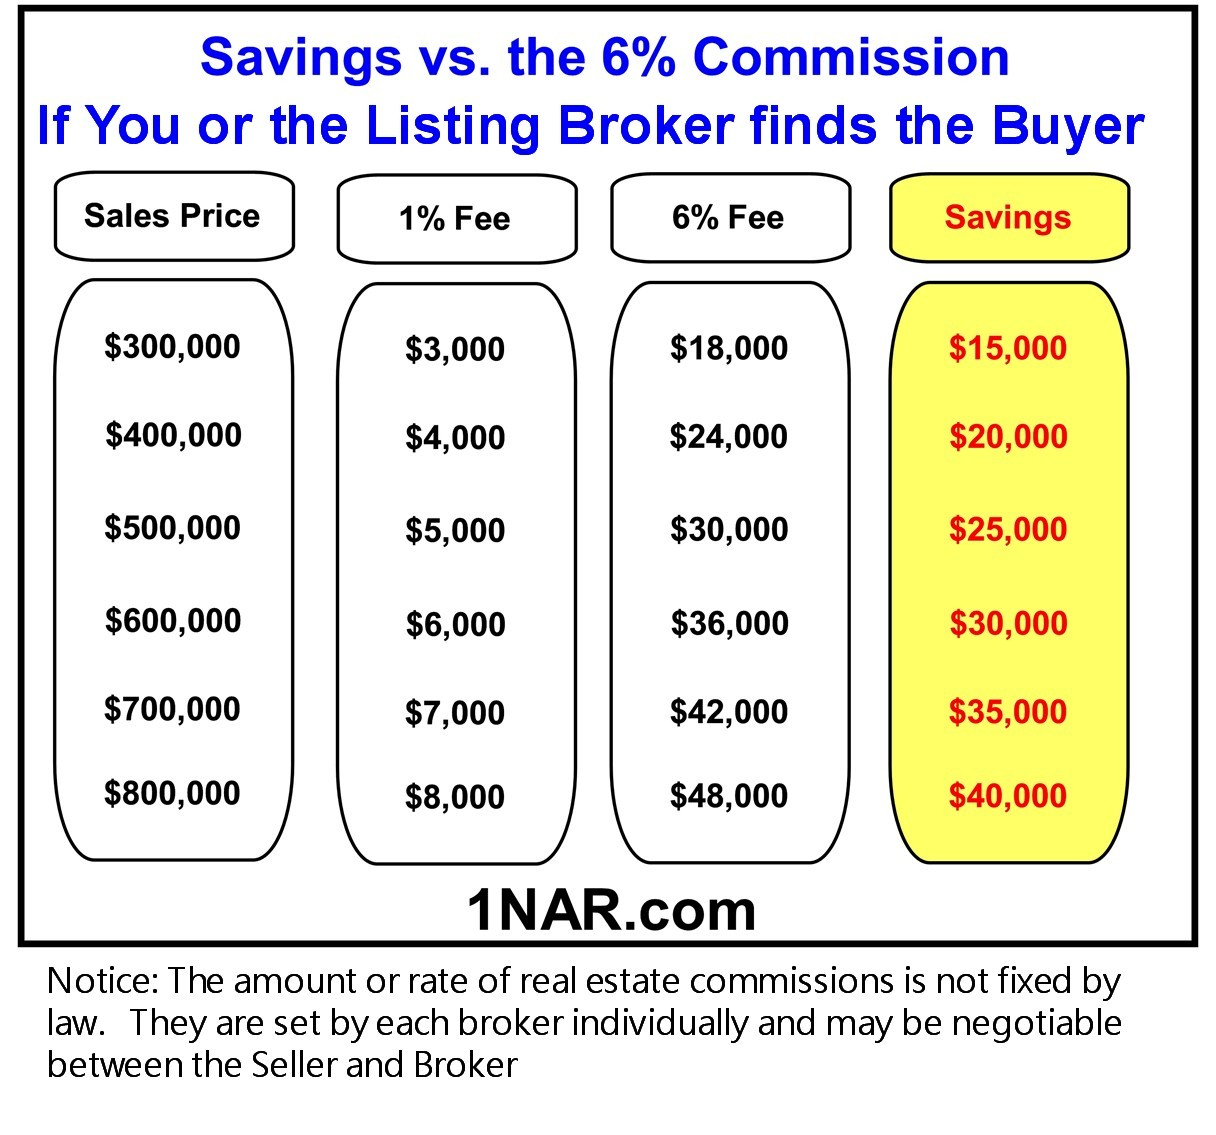 Savings if you or the Listing Broker finds the Buyer with our 1% commission vs a 6% Commission at various sale prices. For example at $500,000 our 1% Listing fee is $5,000 while the 6% commission is $30,000 so you would save $25,000 by listing with us.